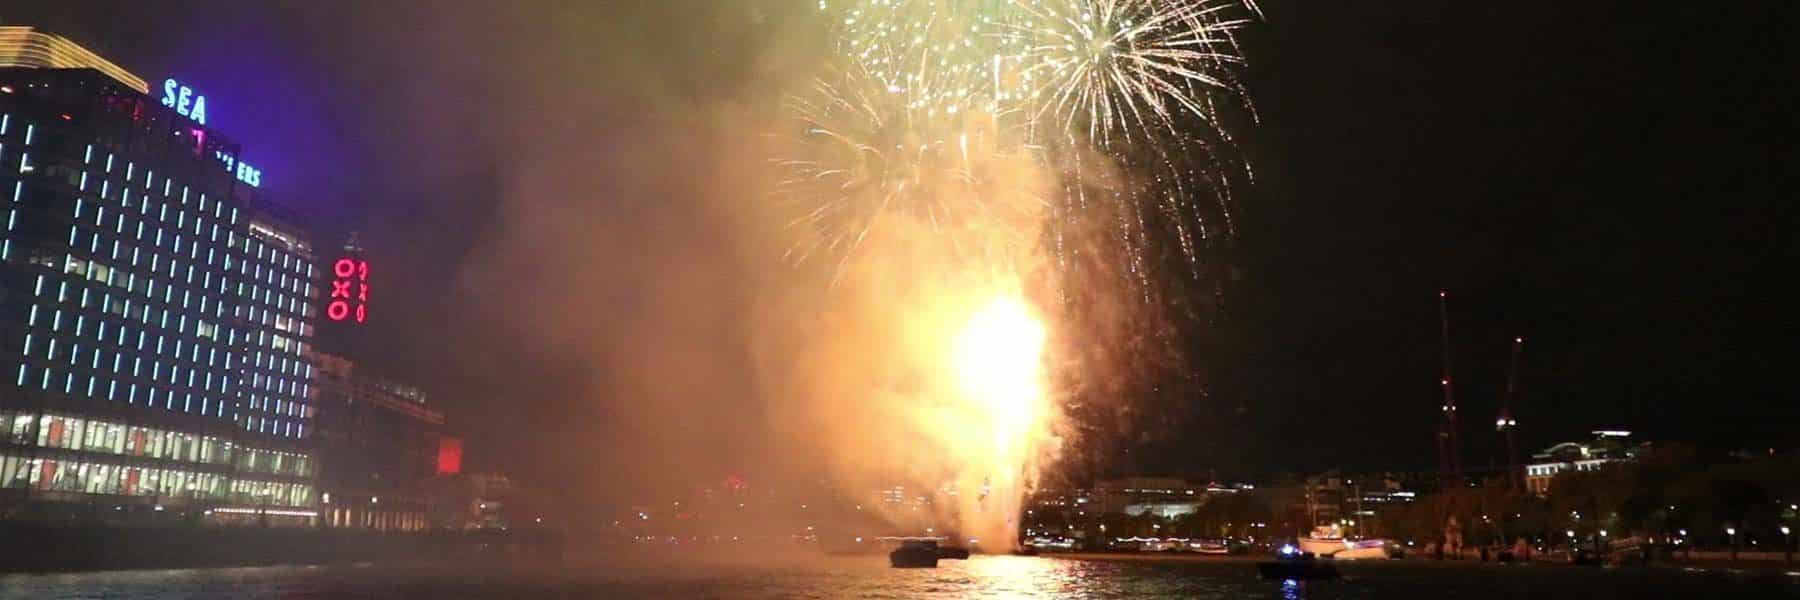 Lord Mayor's Fireworks Display